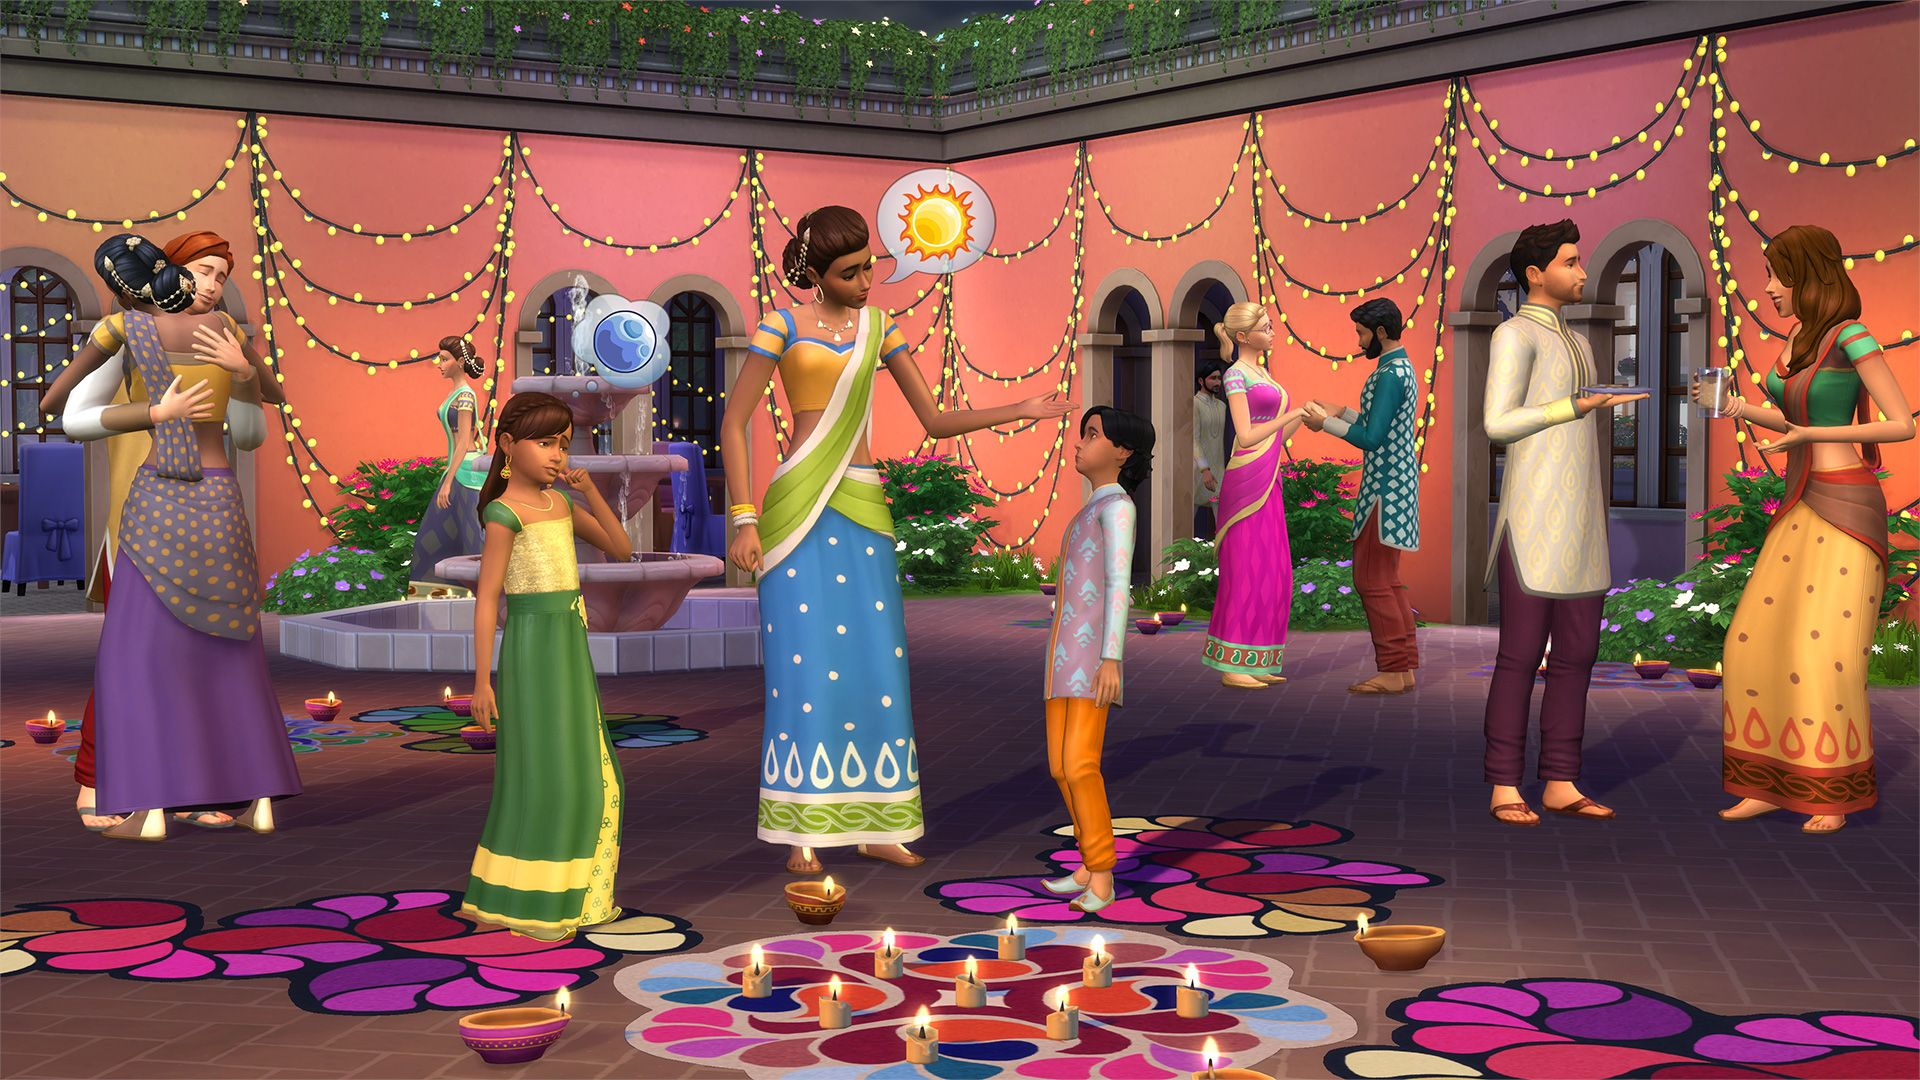 Sims 4 Holiday free patch 'Diwali' comes out Oct 17, 2017. TS4_0255_EF_DIWALI_SCREEN_01_001_1080